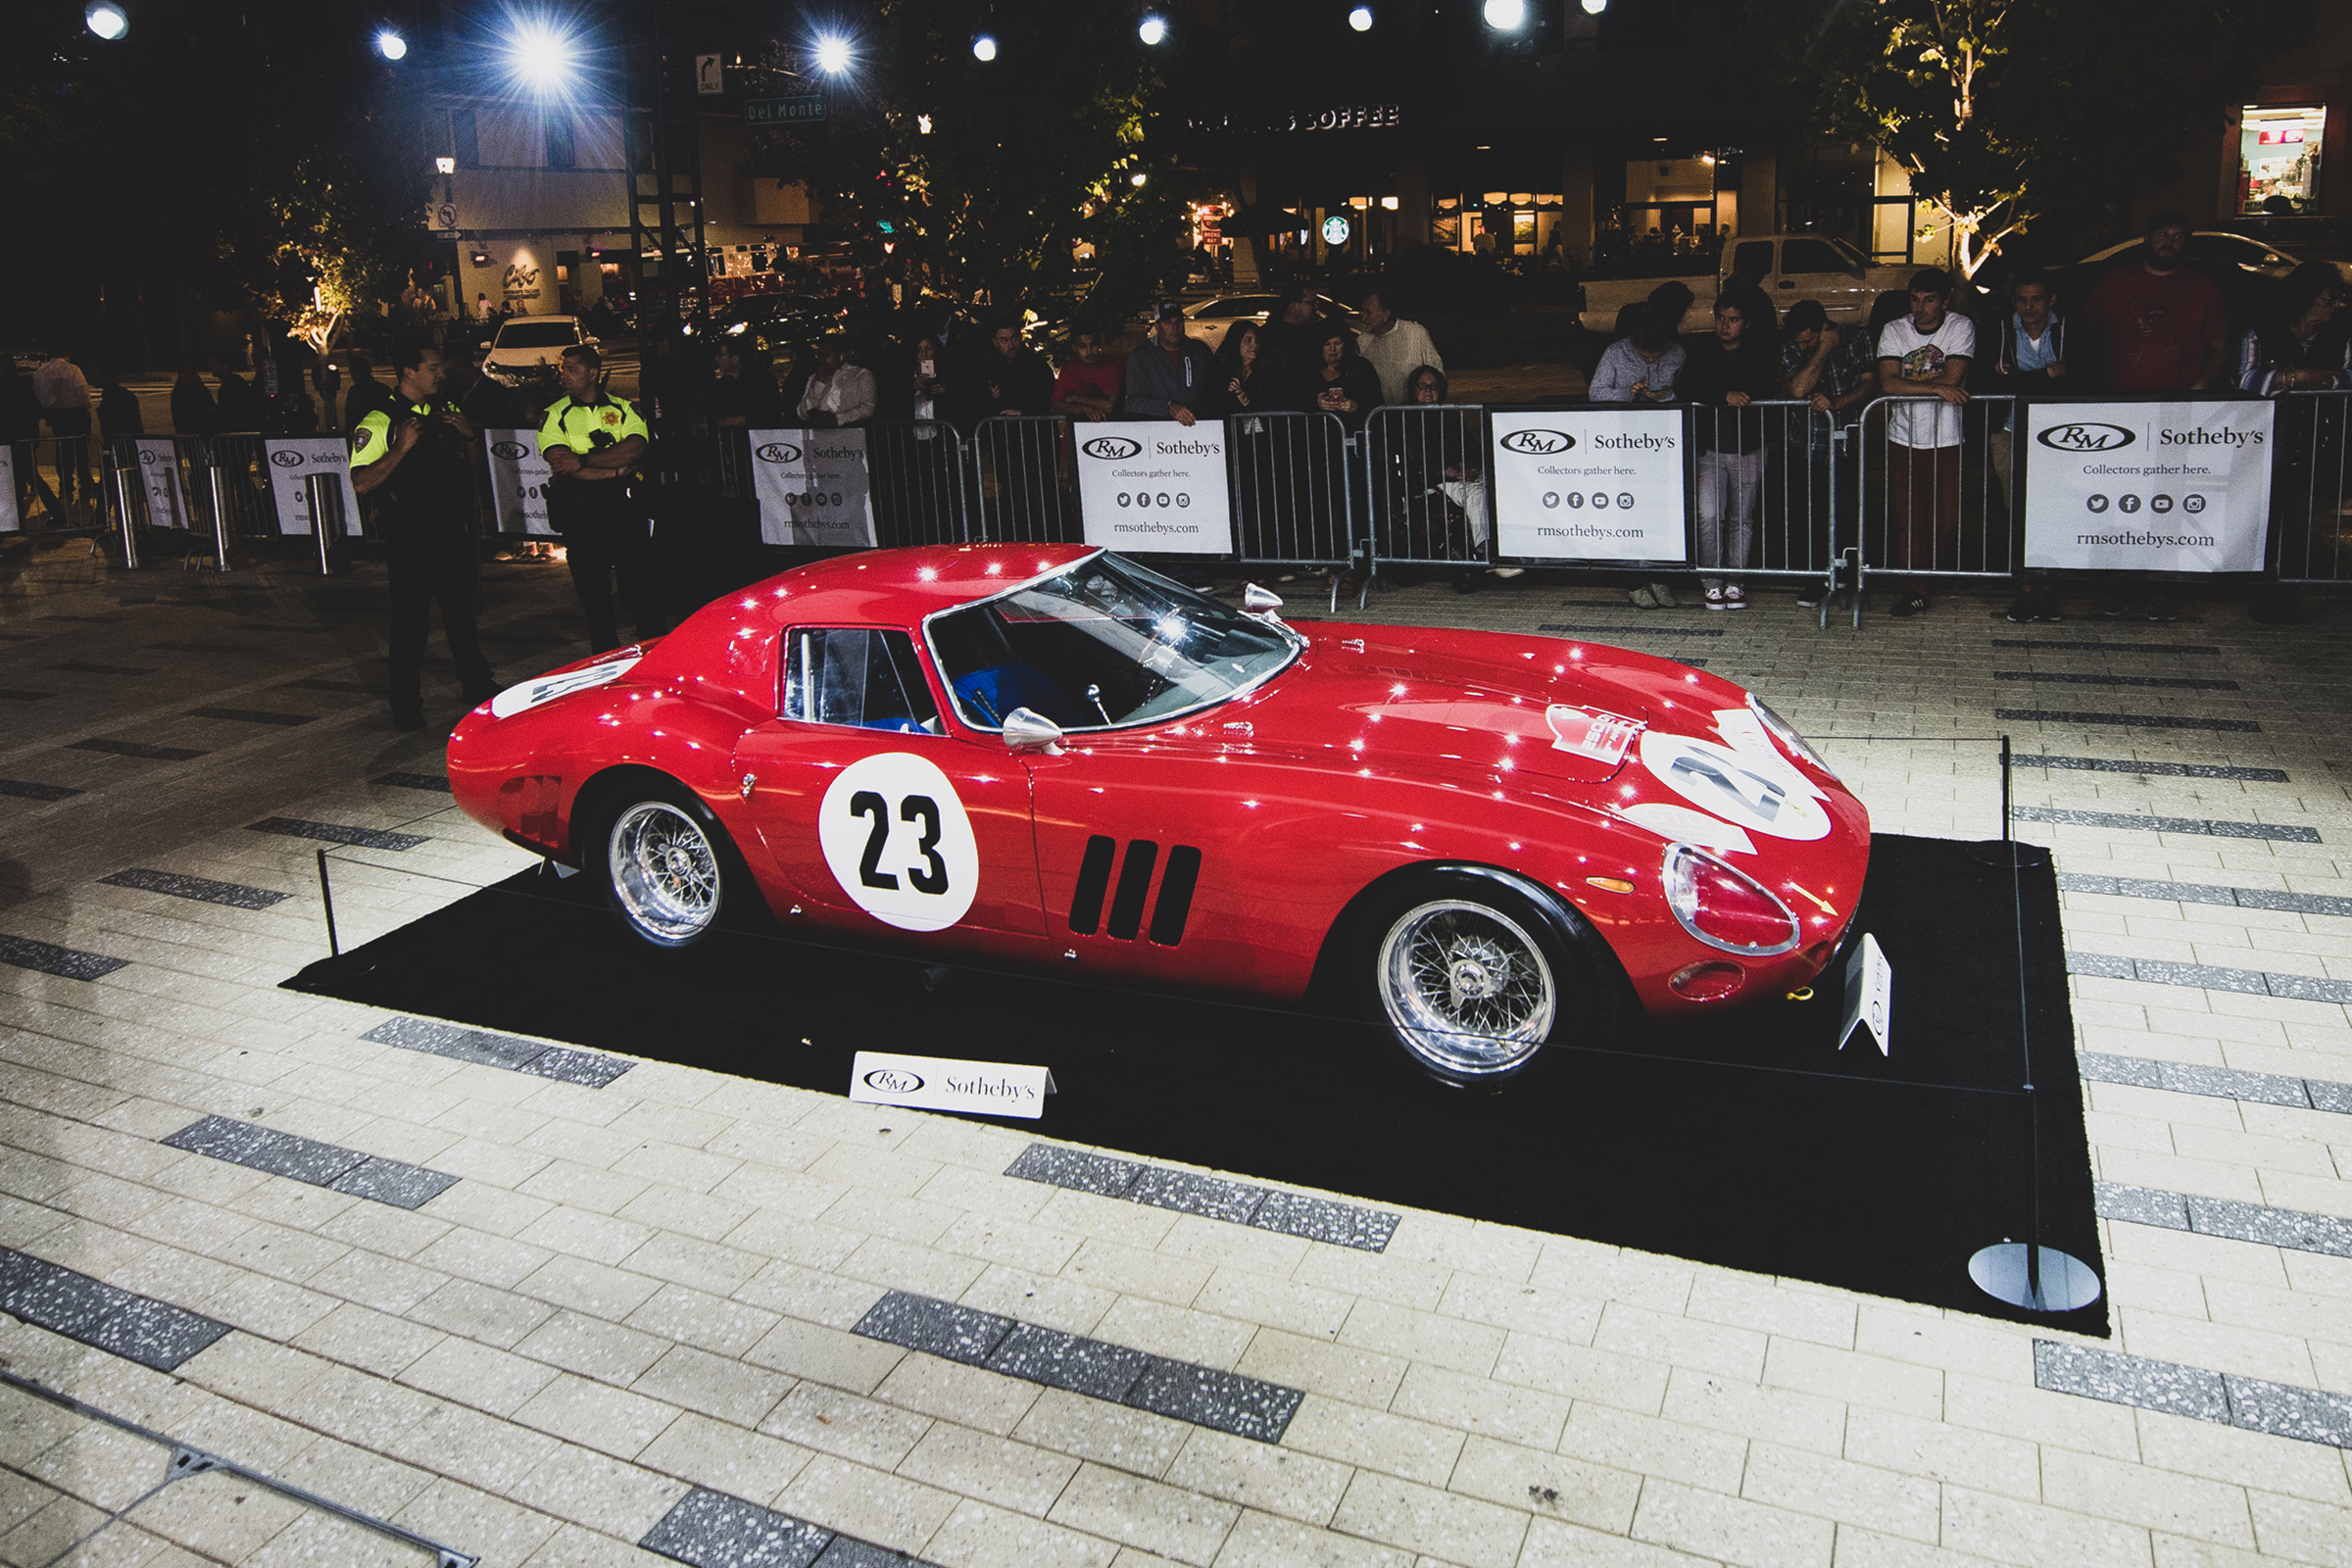 1964 Ferrari 250 GTO Series II LM at RM Sotheby's auction in London